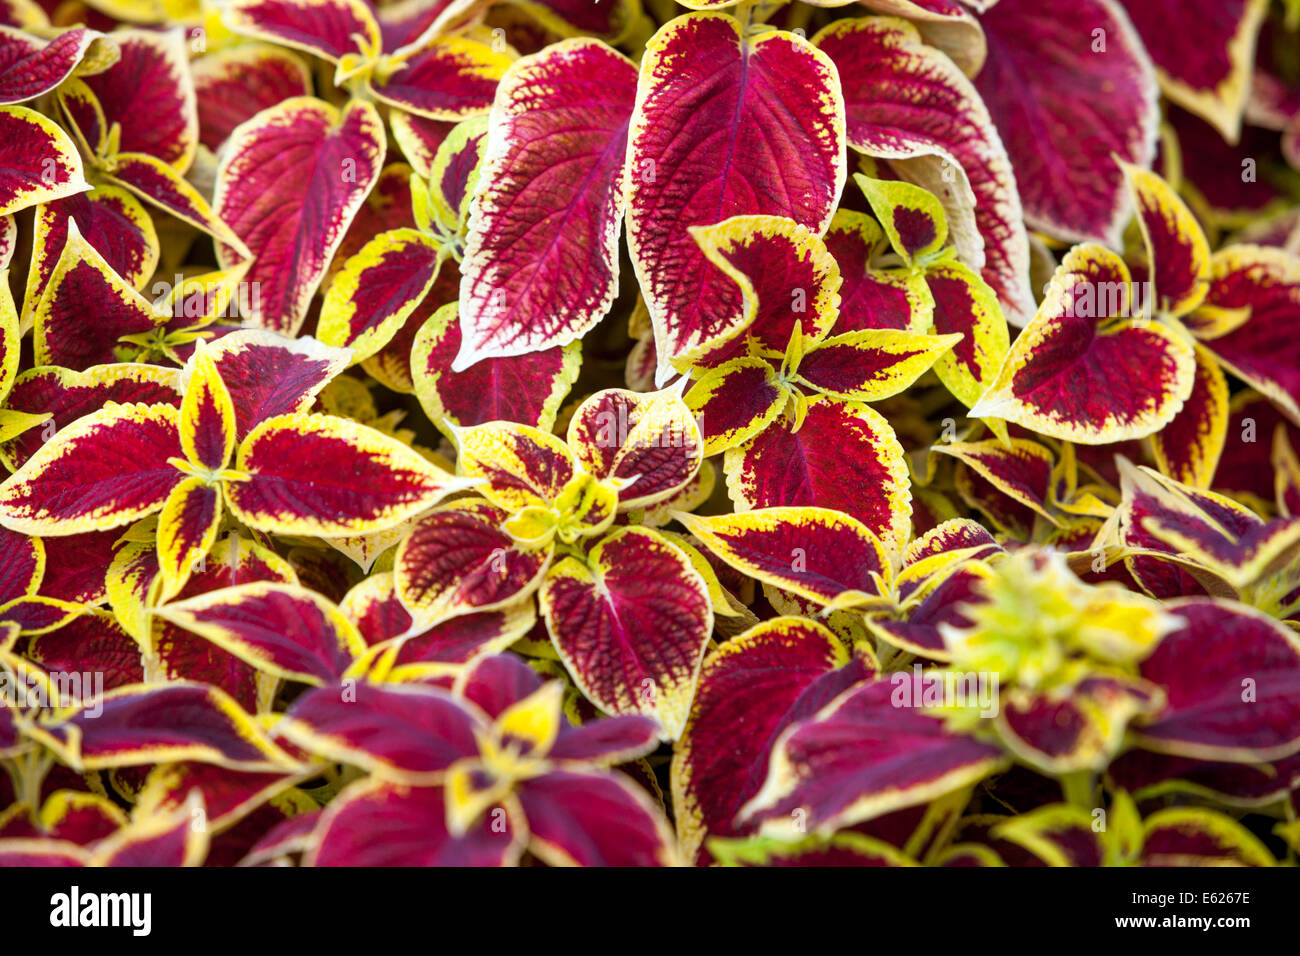 Coleus stock photos coleus stock images alamy colorful flower bed of annual flowers coleus blumel wizard scarlet stock image izmirmasajfo Image collections